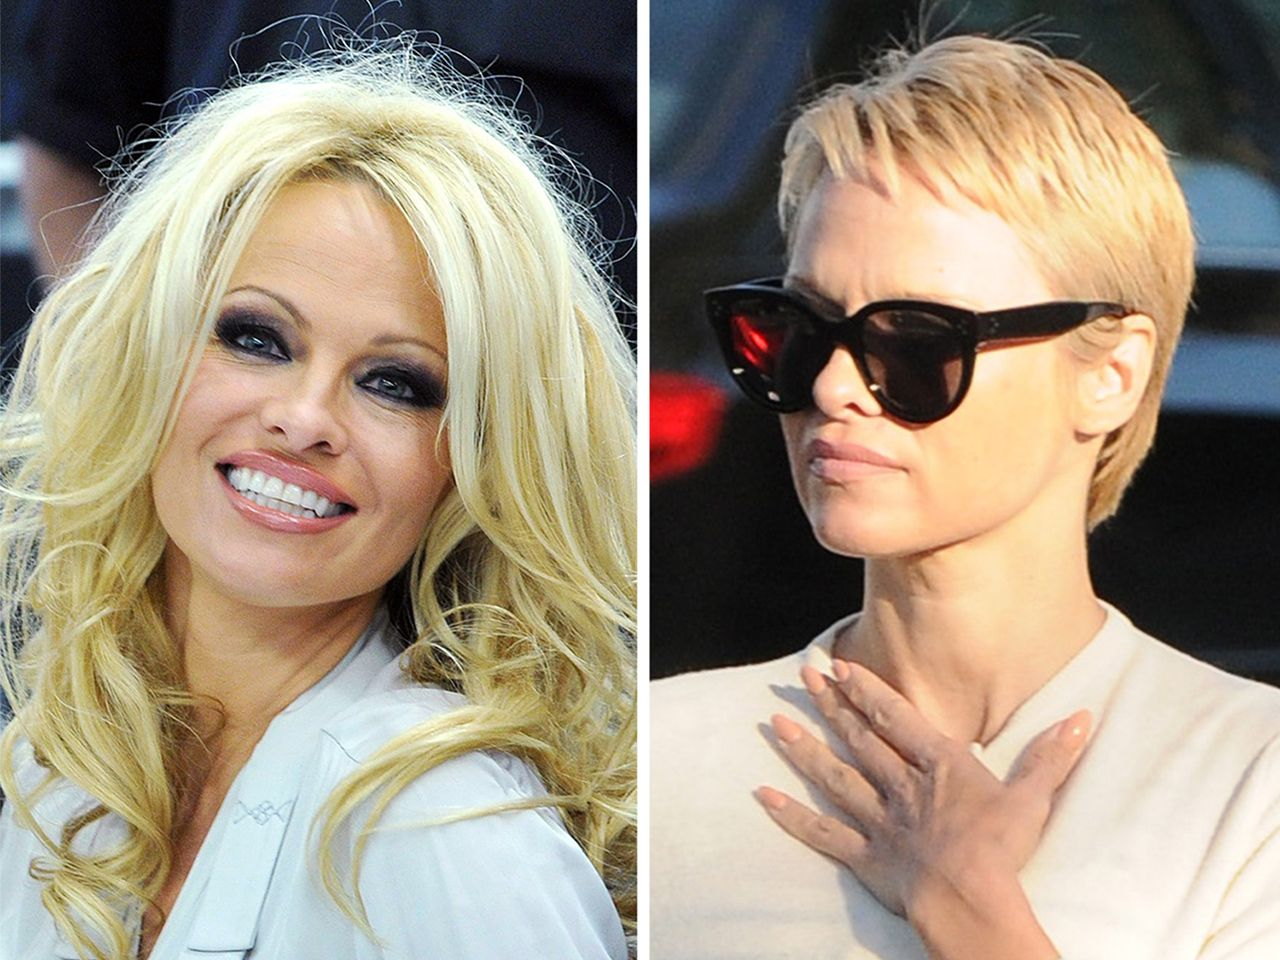 pamela anderson chops 'baywatch' hair into pixie cut in 2019 | hair